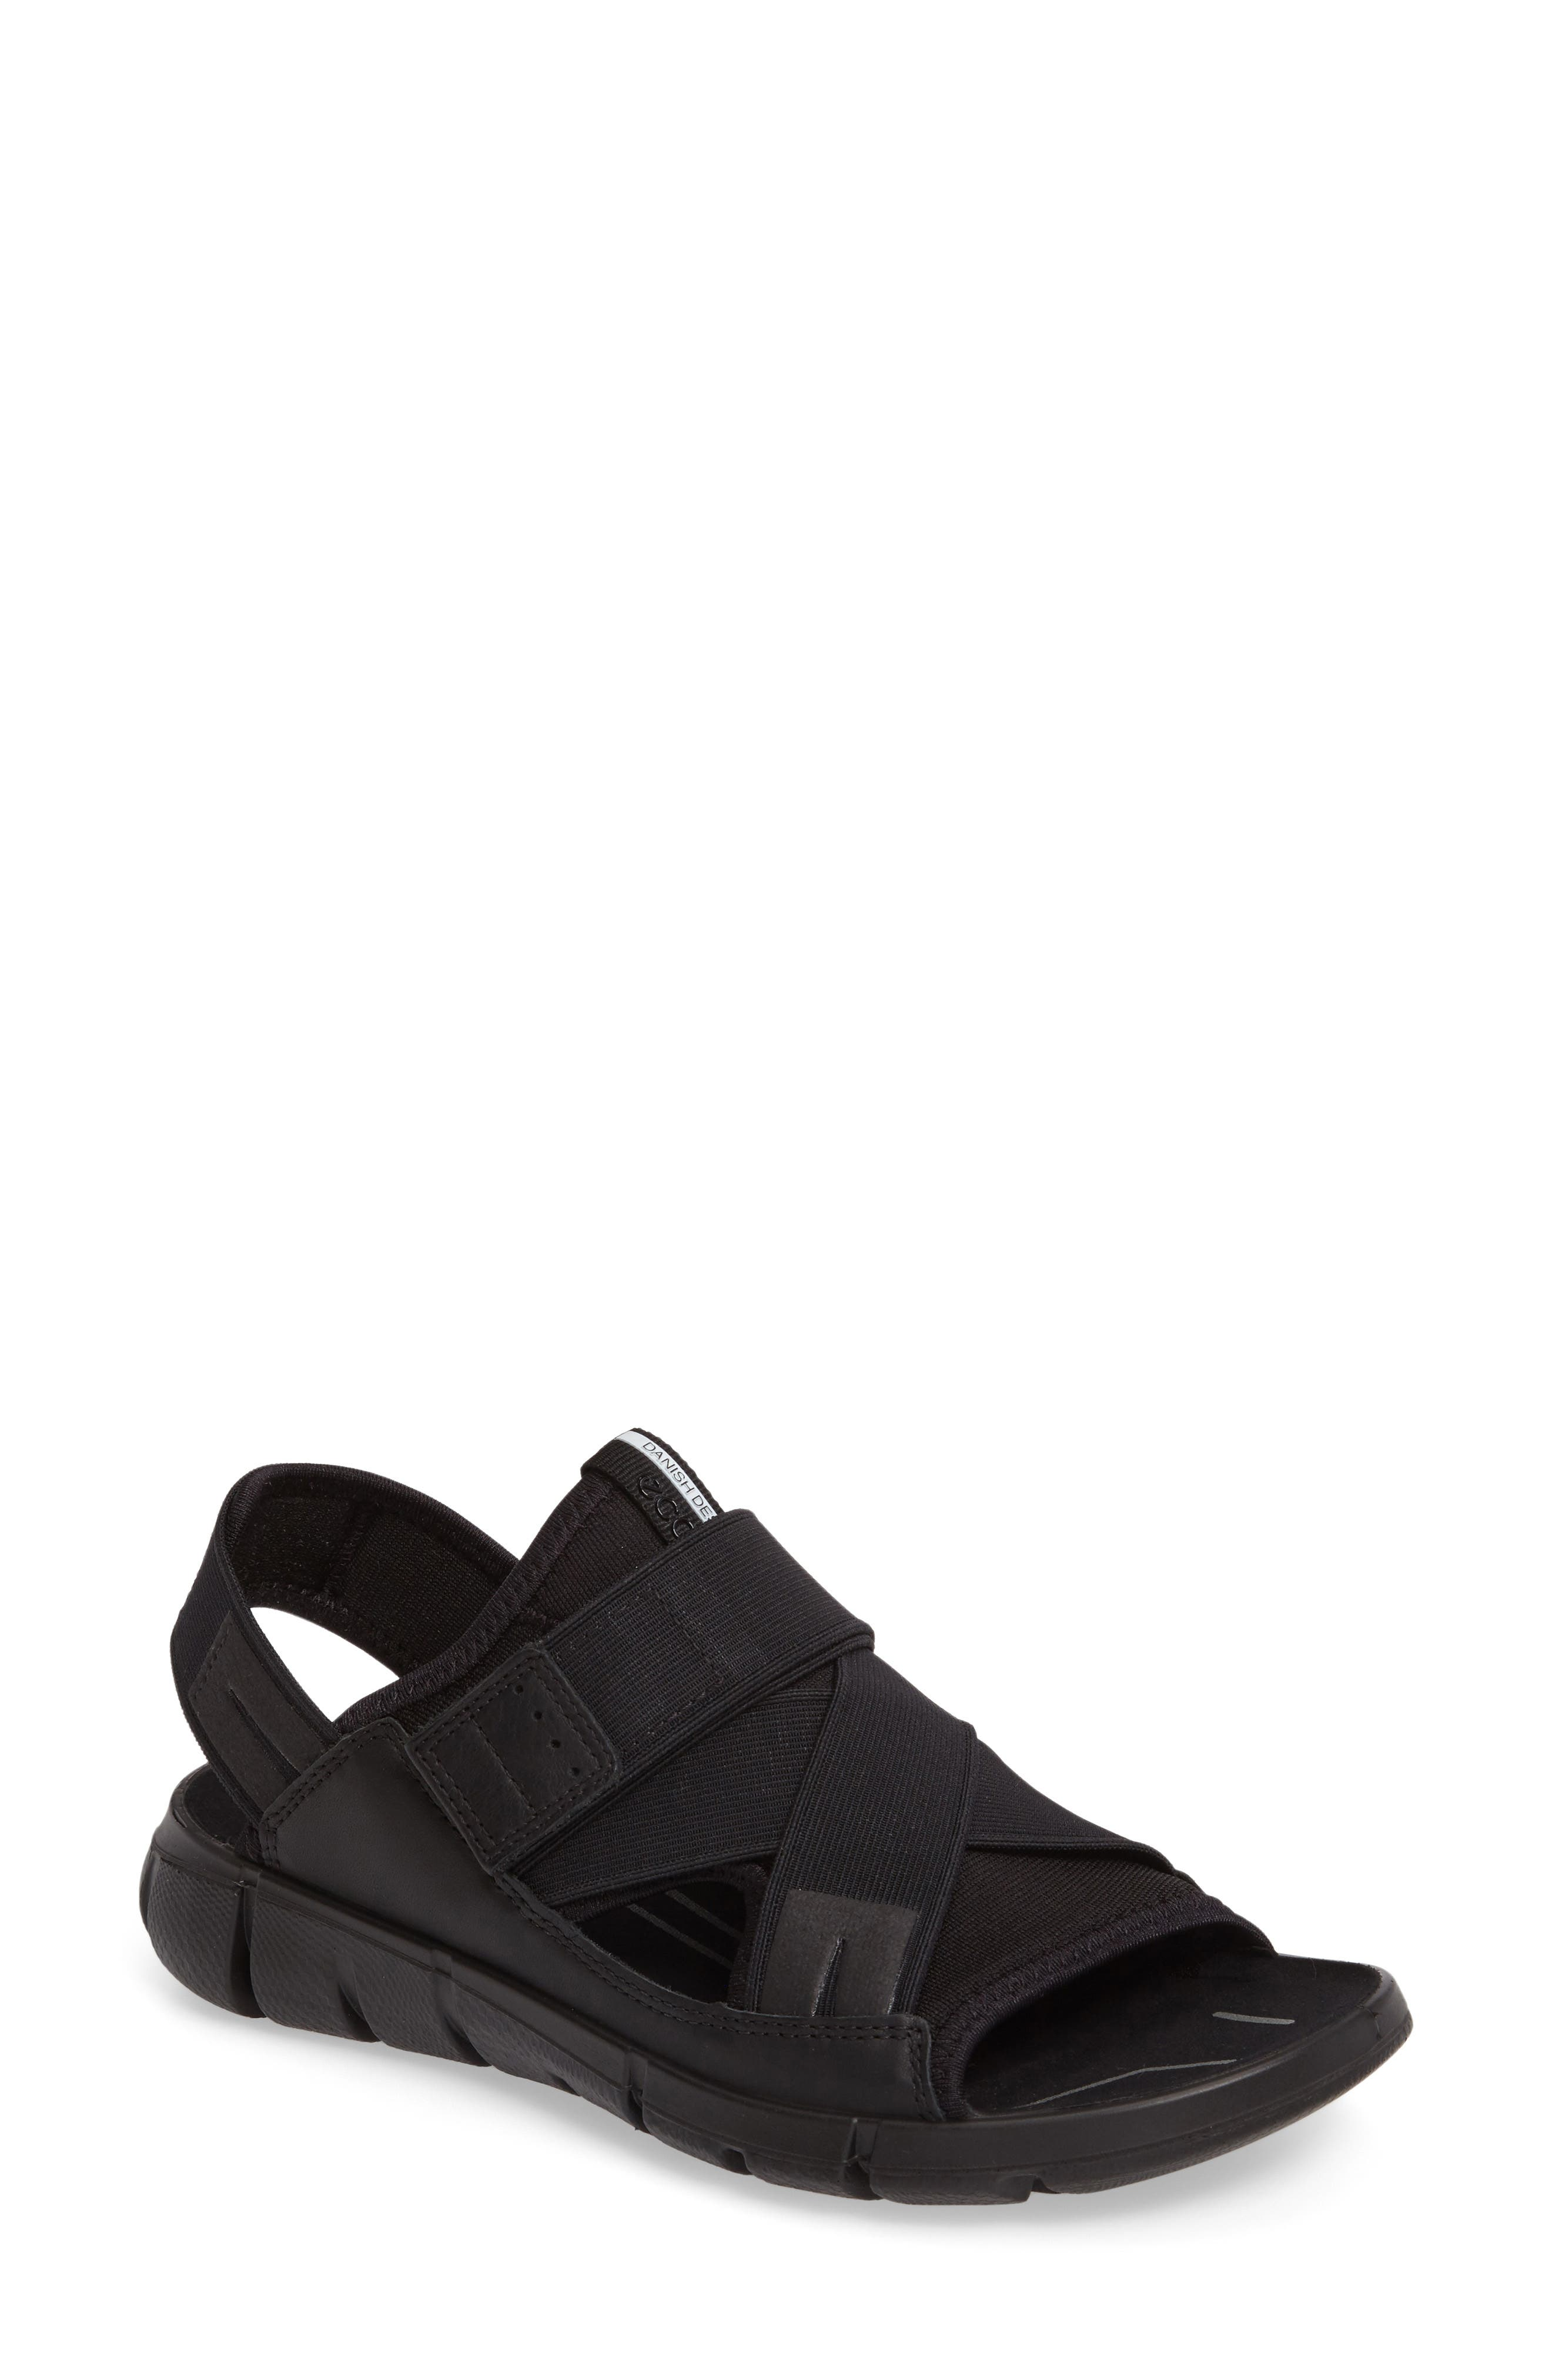 ECCO Intrinsic Sandal (Women)